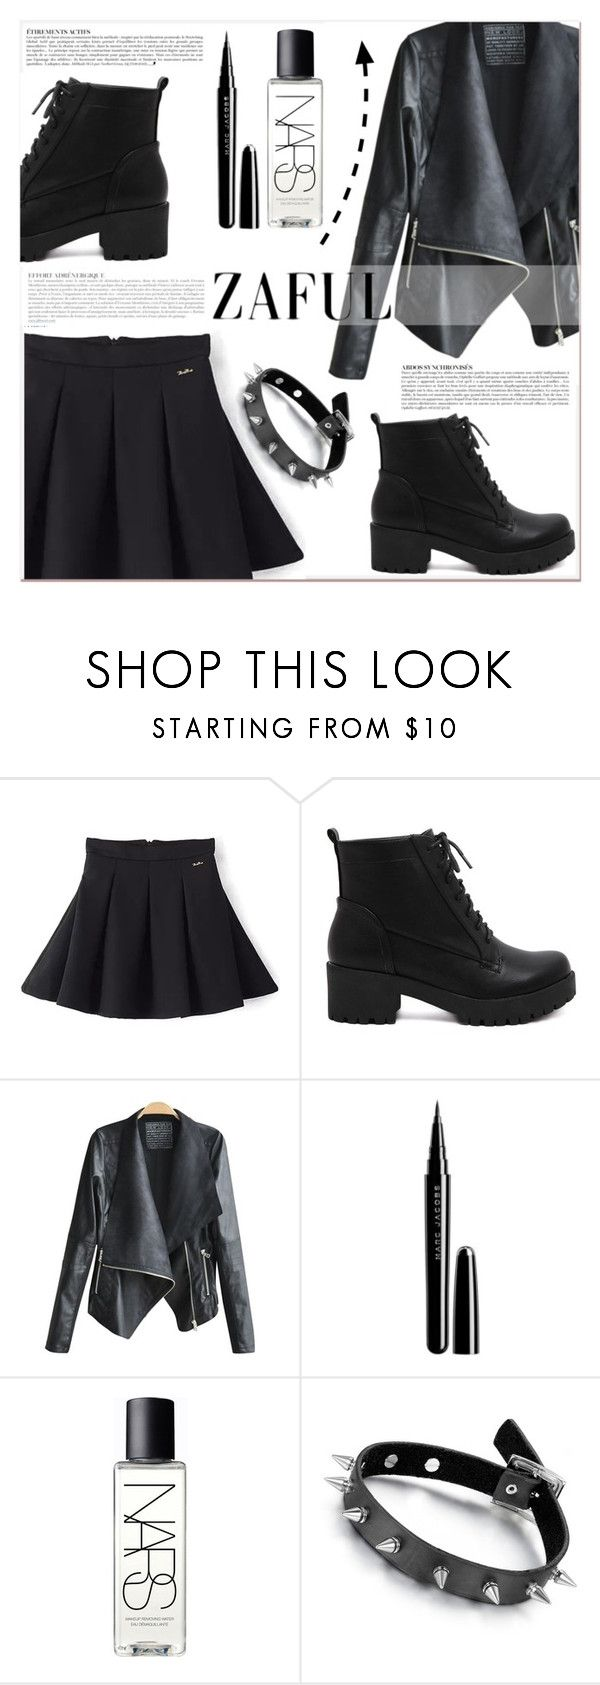 """www.zaful.com/?lkid=7011"" by lucky-1990 ❤ liked on Polyvore featuring Anja, Marc Jacobs, NARS Cosmetics, Black Rivet and zaful"